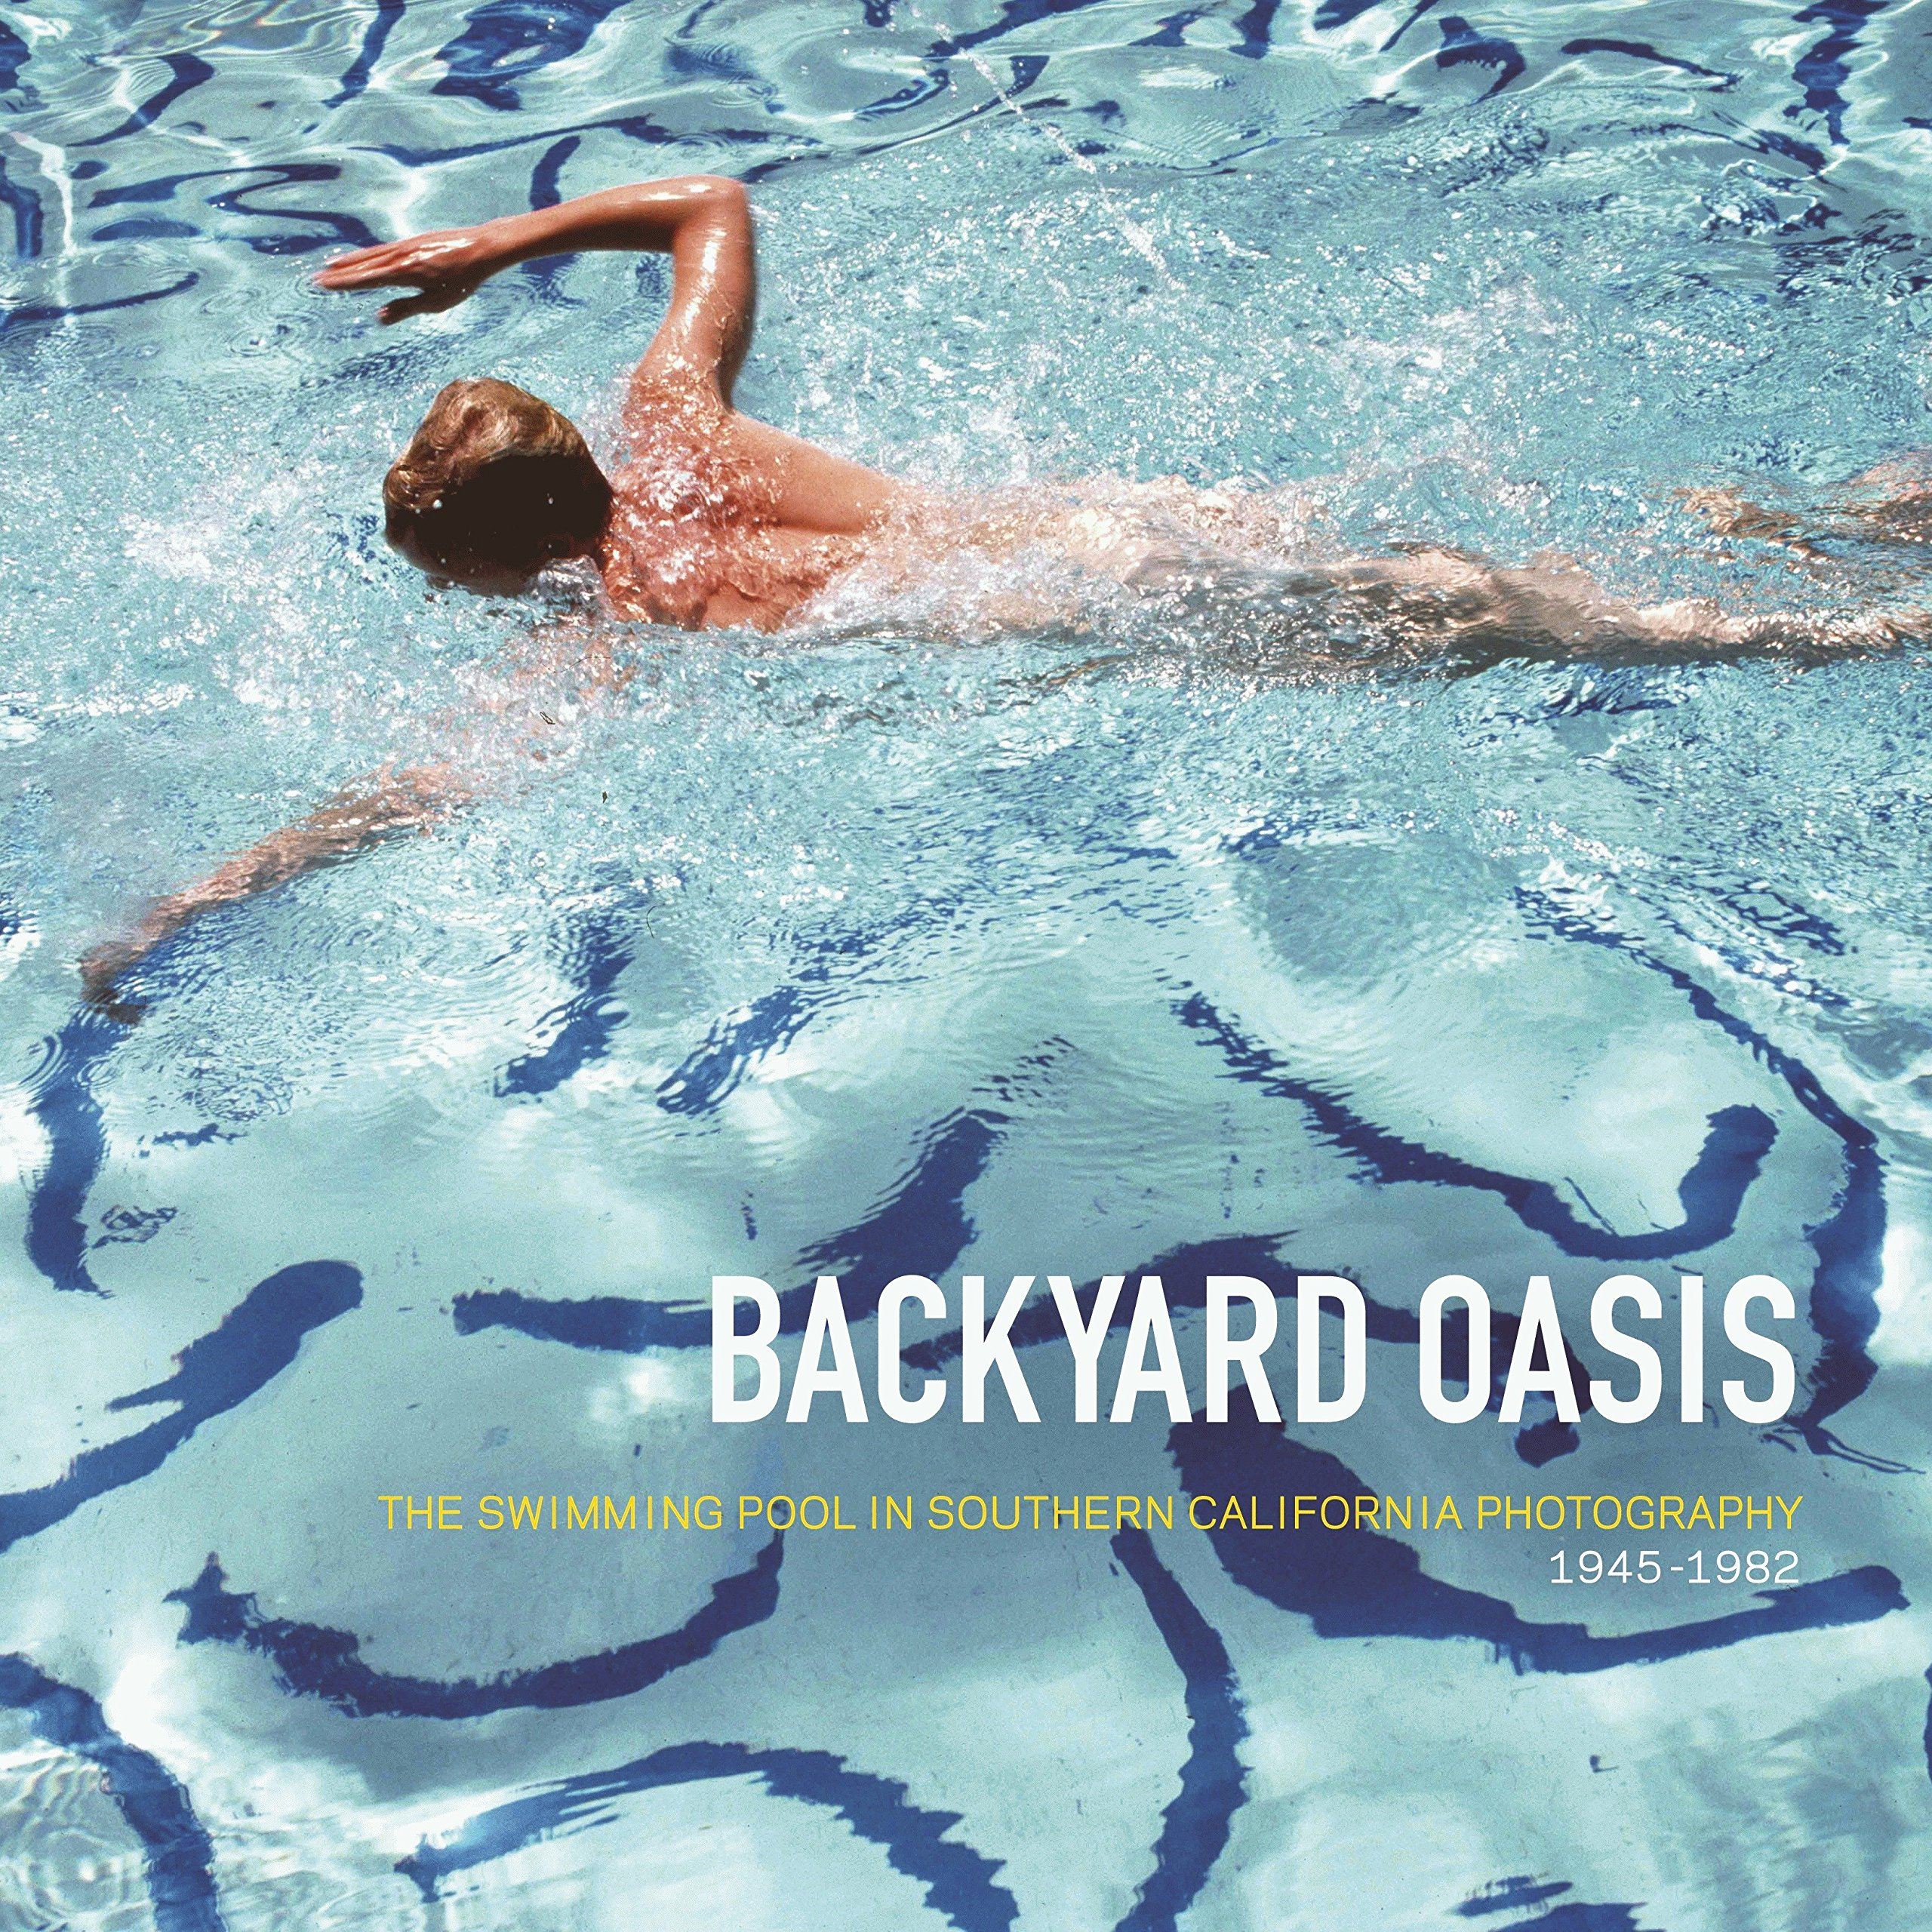 Amazon.com: Backyard Oasis: The Swimming Pool in Southern ...